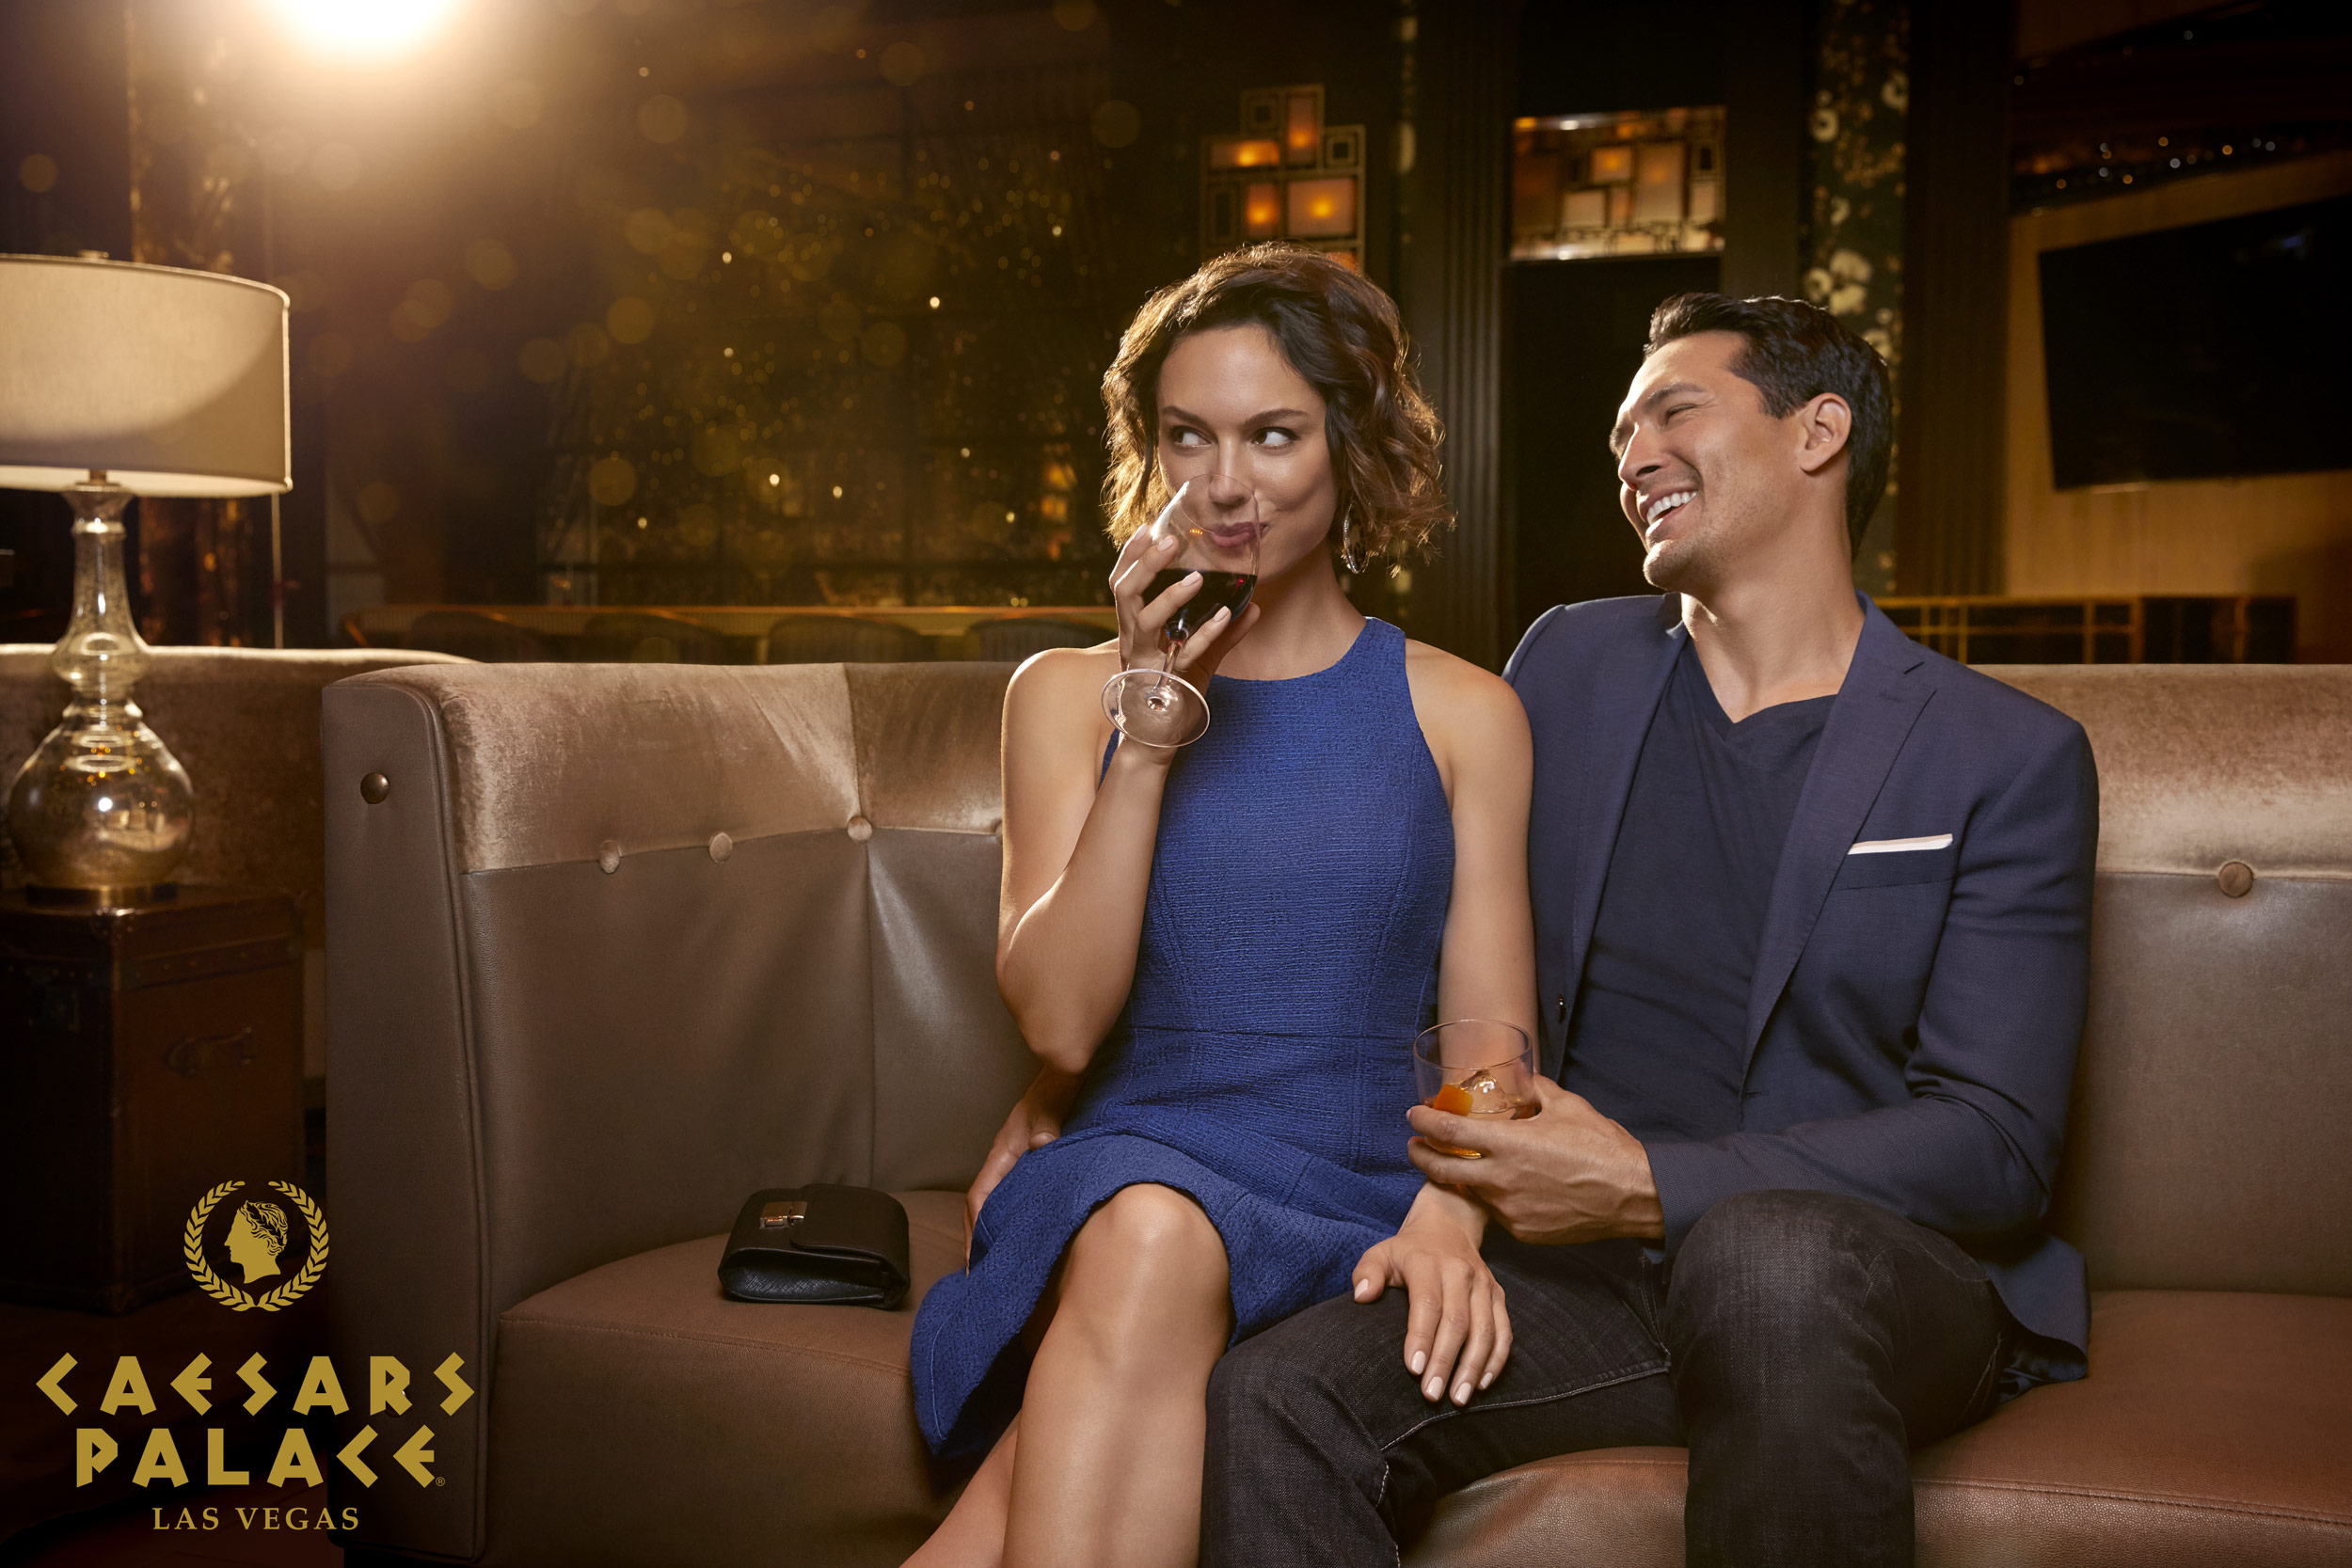 Couple sitting in a lounge drinking wine and laughing - Kimberly Genevieve Los Angeles Lifestyle Advertising Photographer